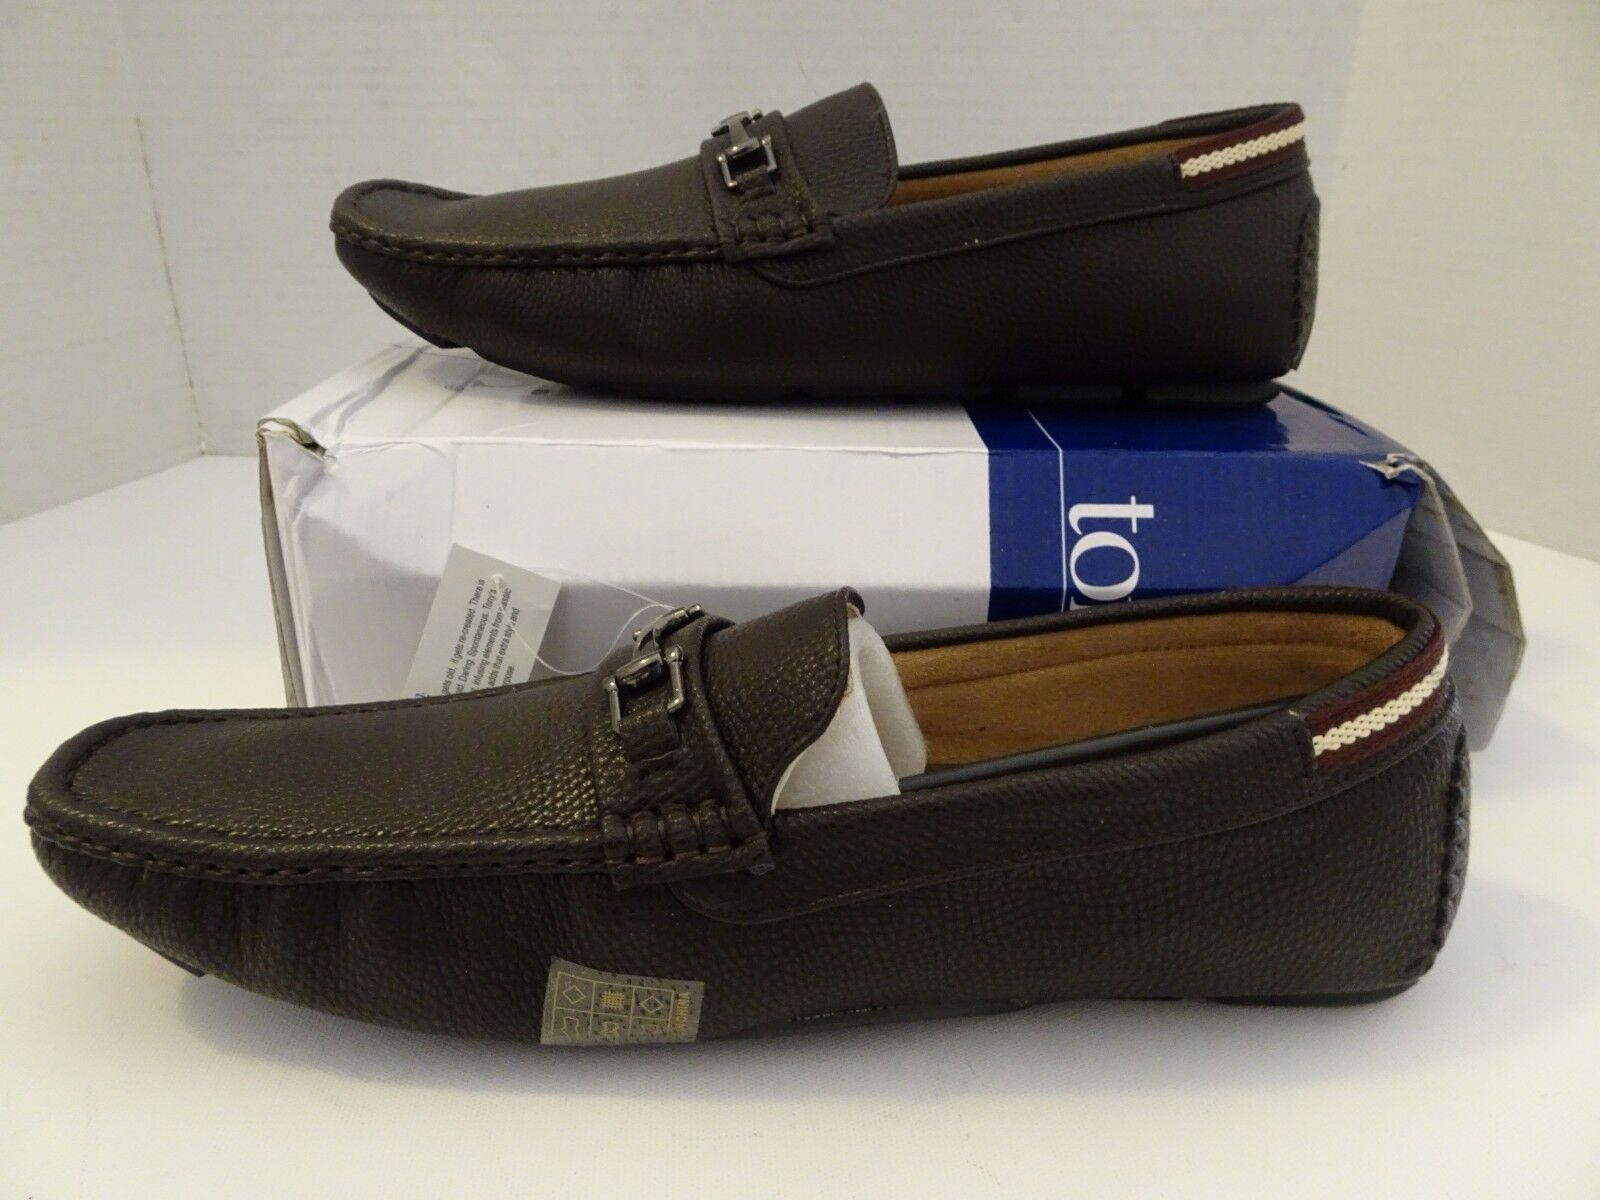 TONYS Casuals  Men's Size 13 Brown Loafers Slip On shoes